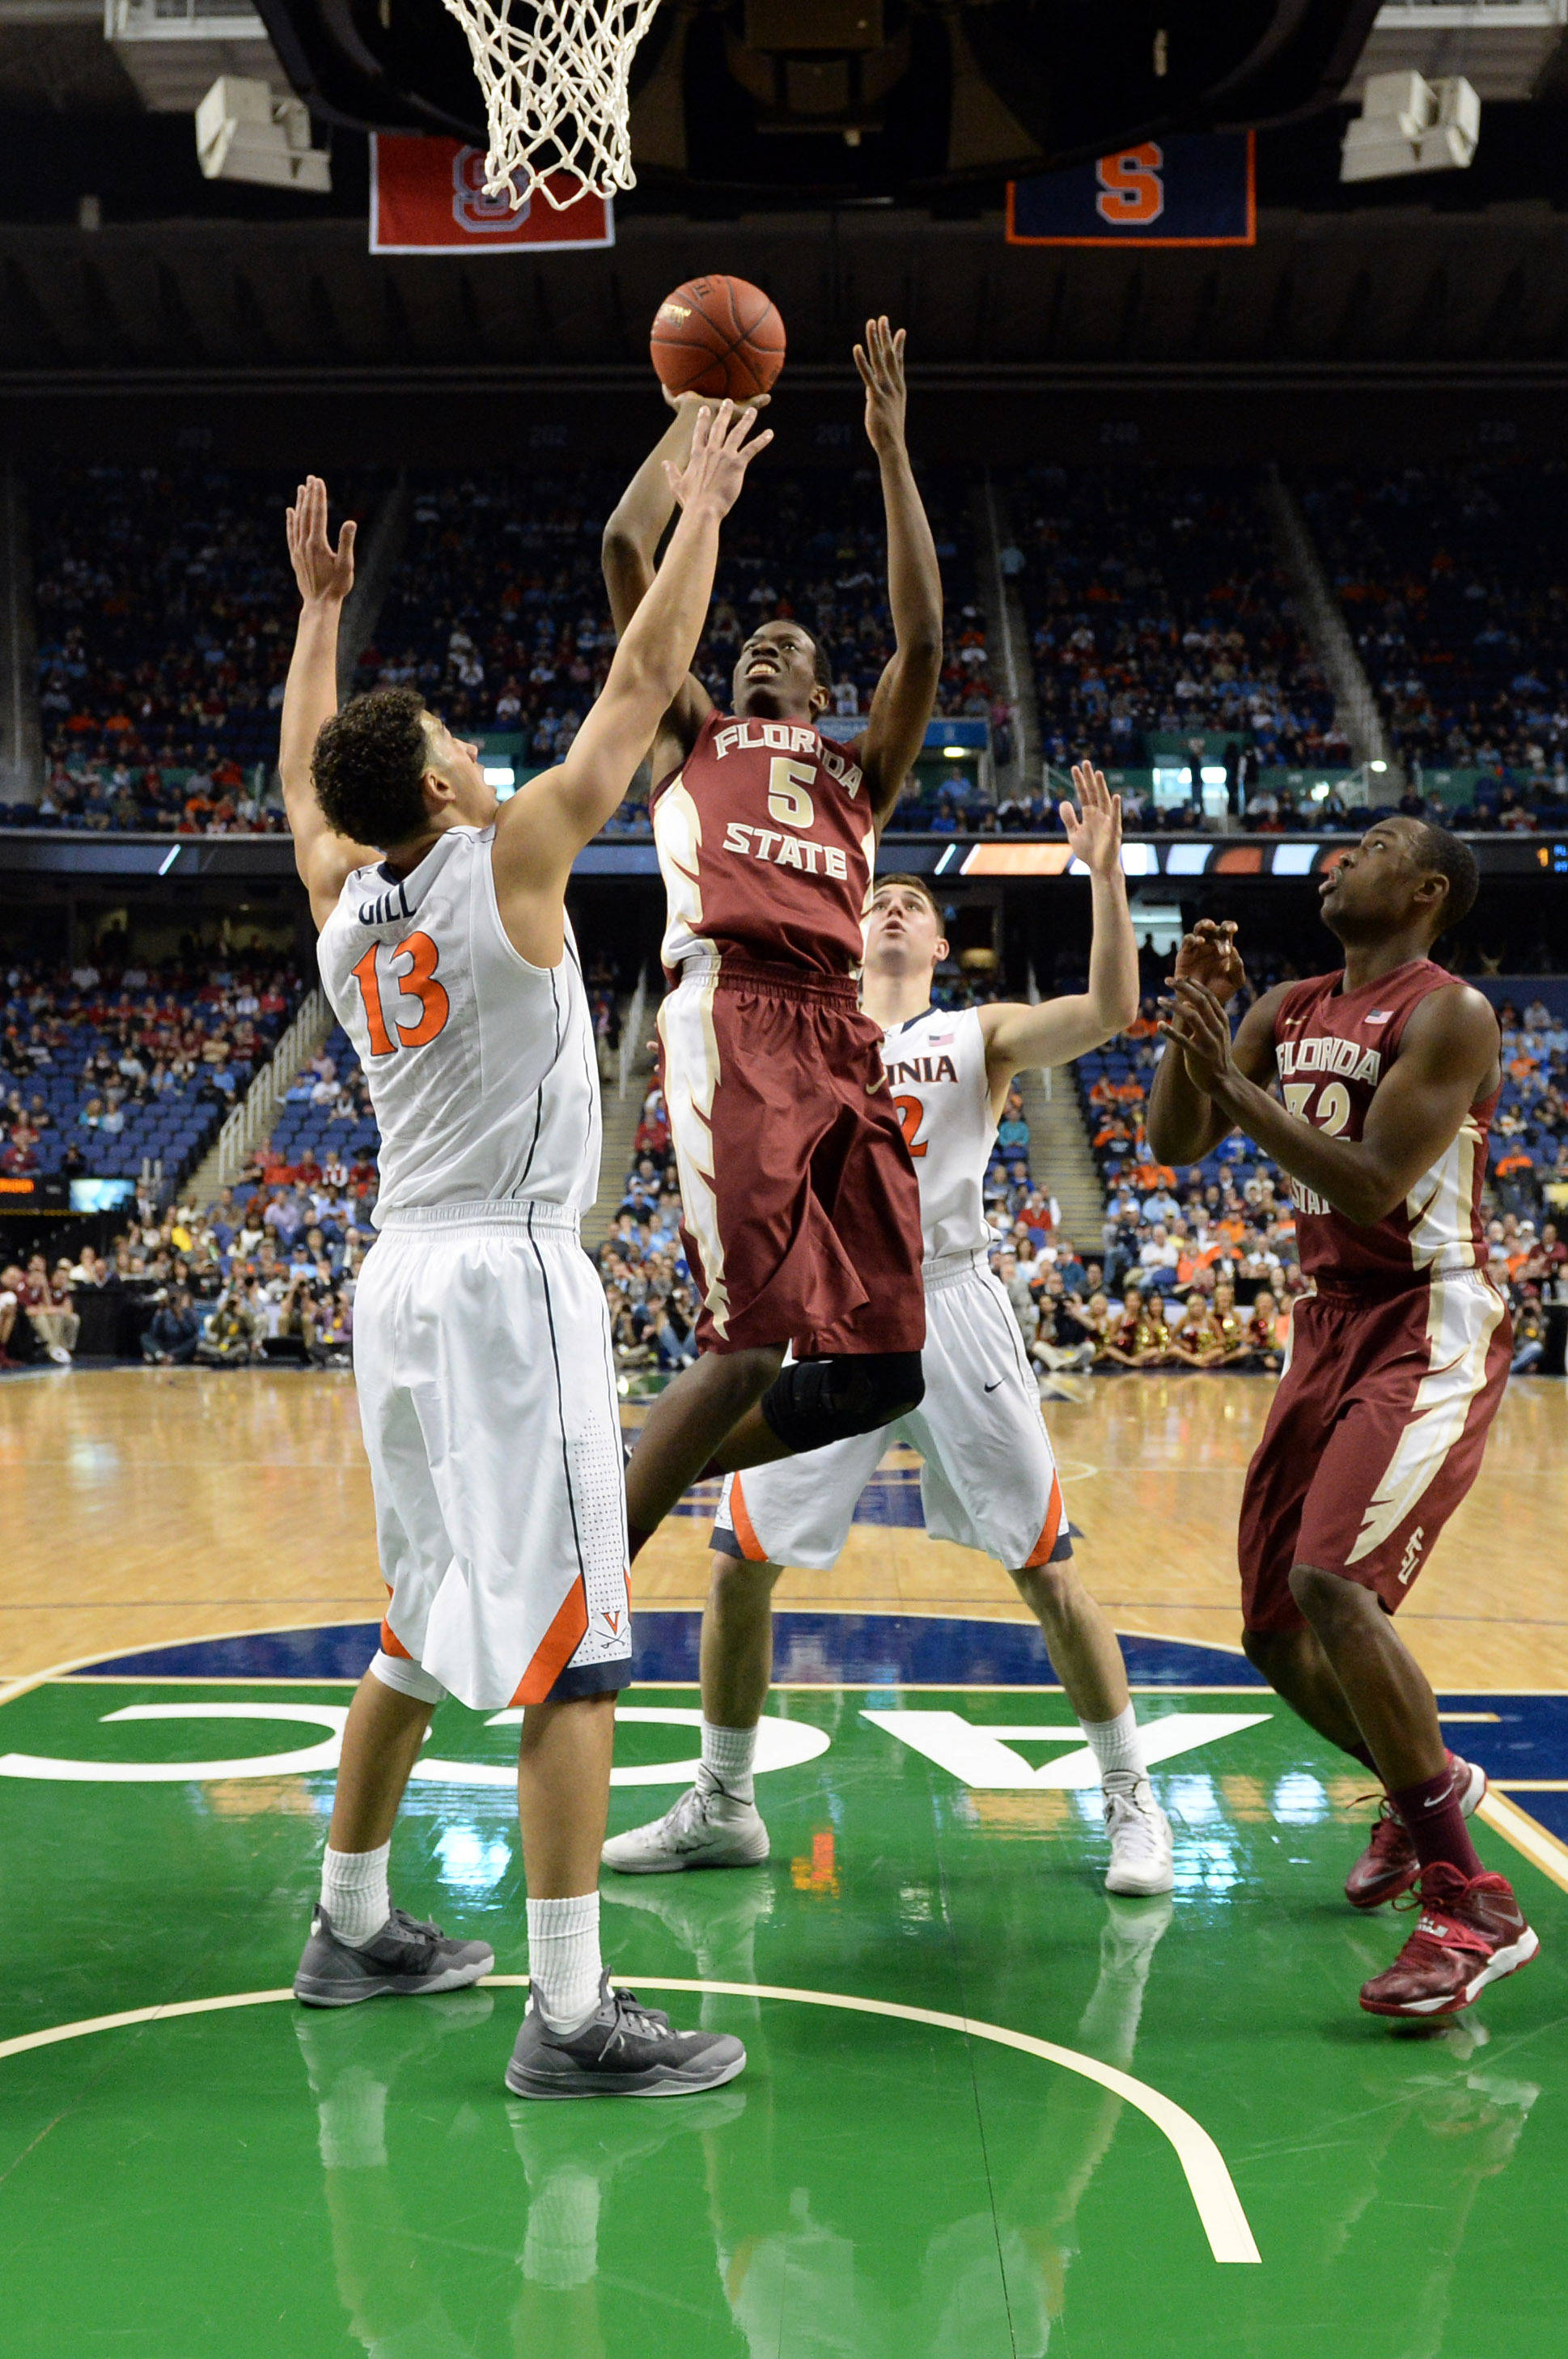 Mar 14, 2014; Greensboro, NC, USA; Florida State Seminoles forward Jarquez Smith (5) drives to the basket against Virginia Cavaliers forward Anthony Gill (13) in the quarterfinals of the ACC college basketball tournament at Greensboro Coliseum. Mandatory Credit: John David Mercer-USA TODAY Sports